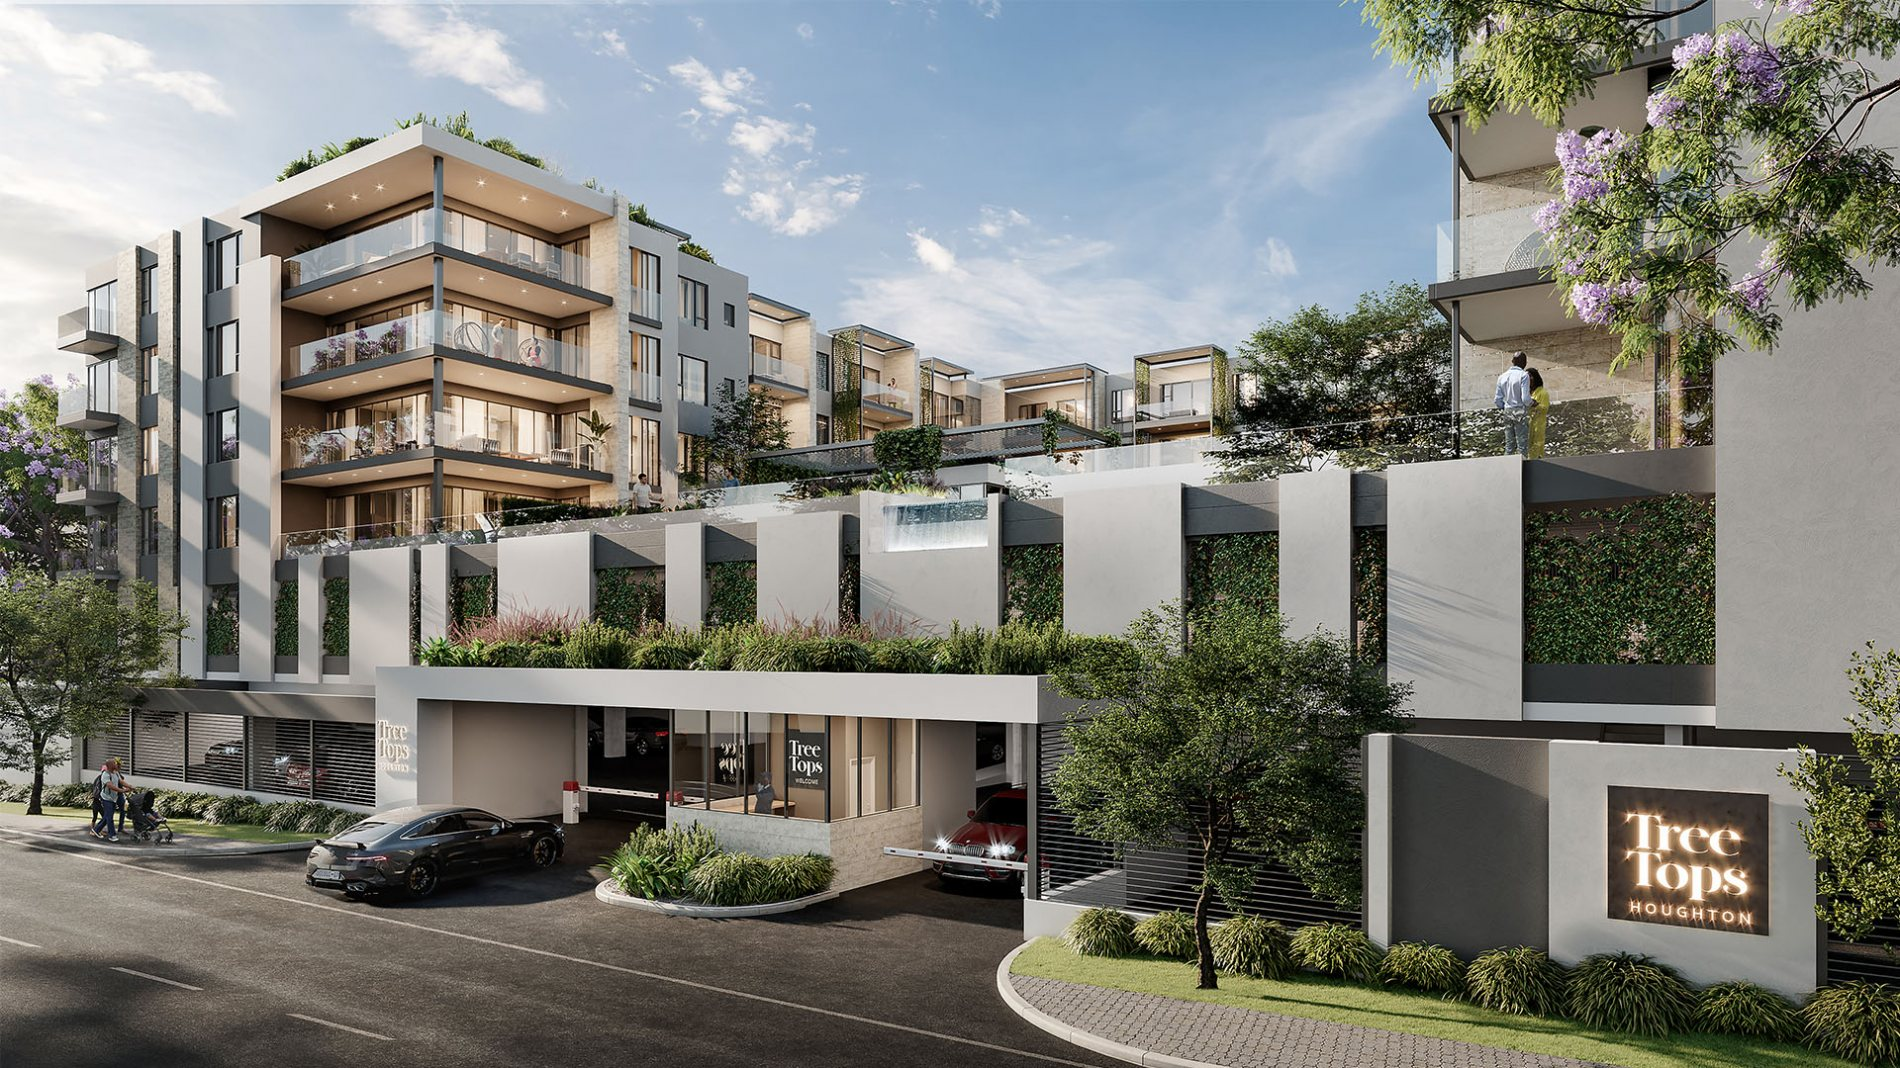 Everything Property Investors kept they trust in Tricolt developers